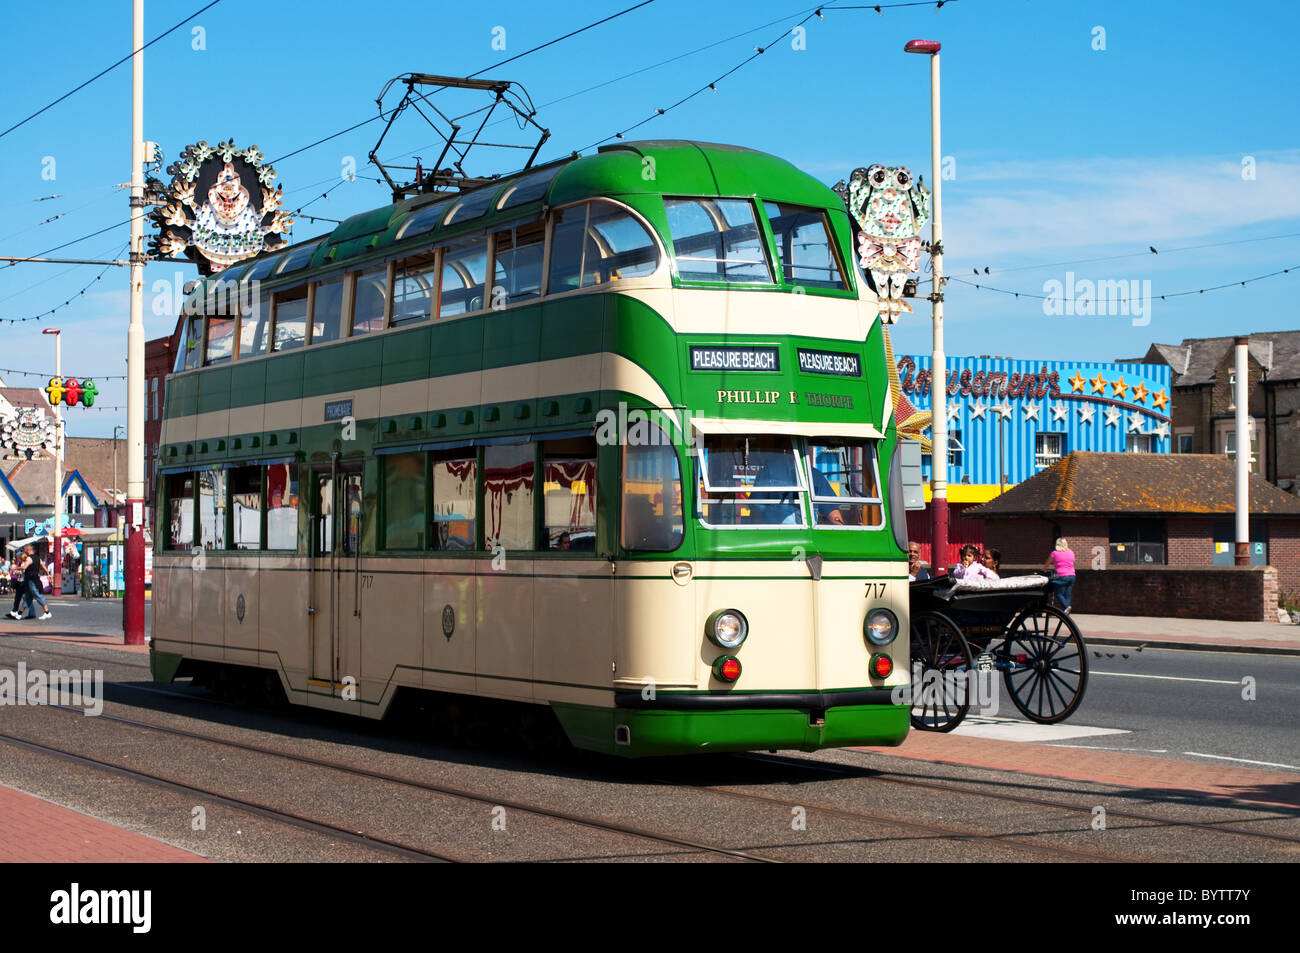 A traditional style tram running along the ' golden mile ' in Blackpool, England, UK - Stock Image